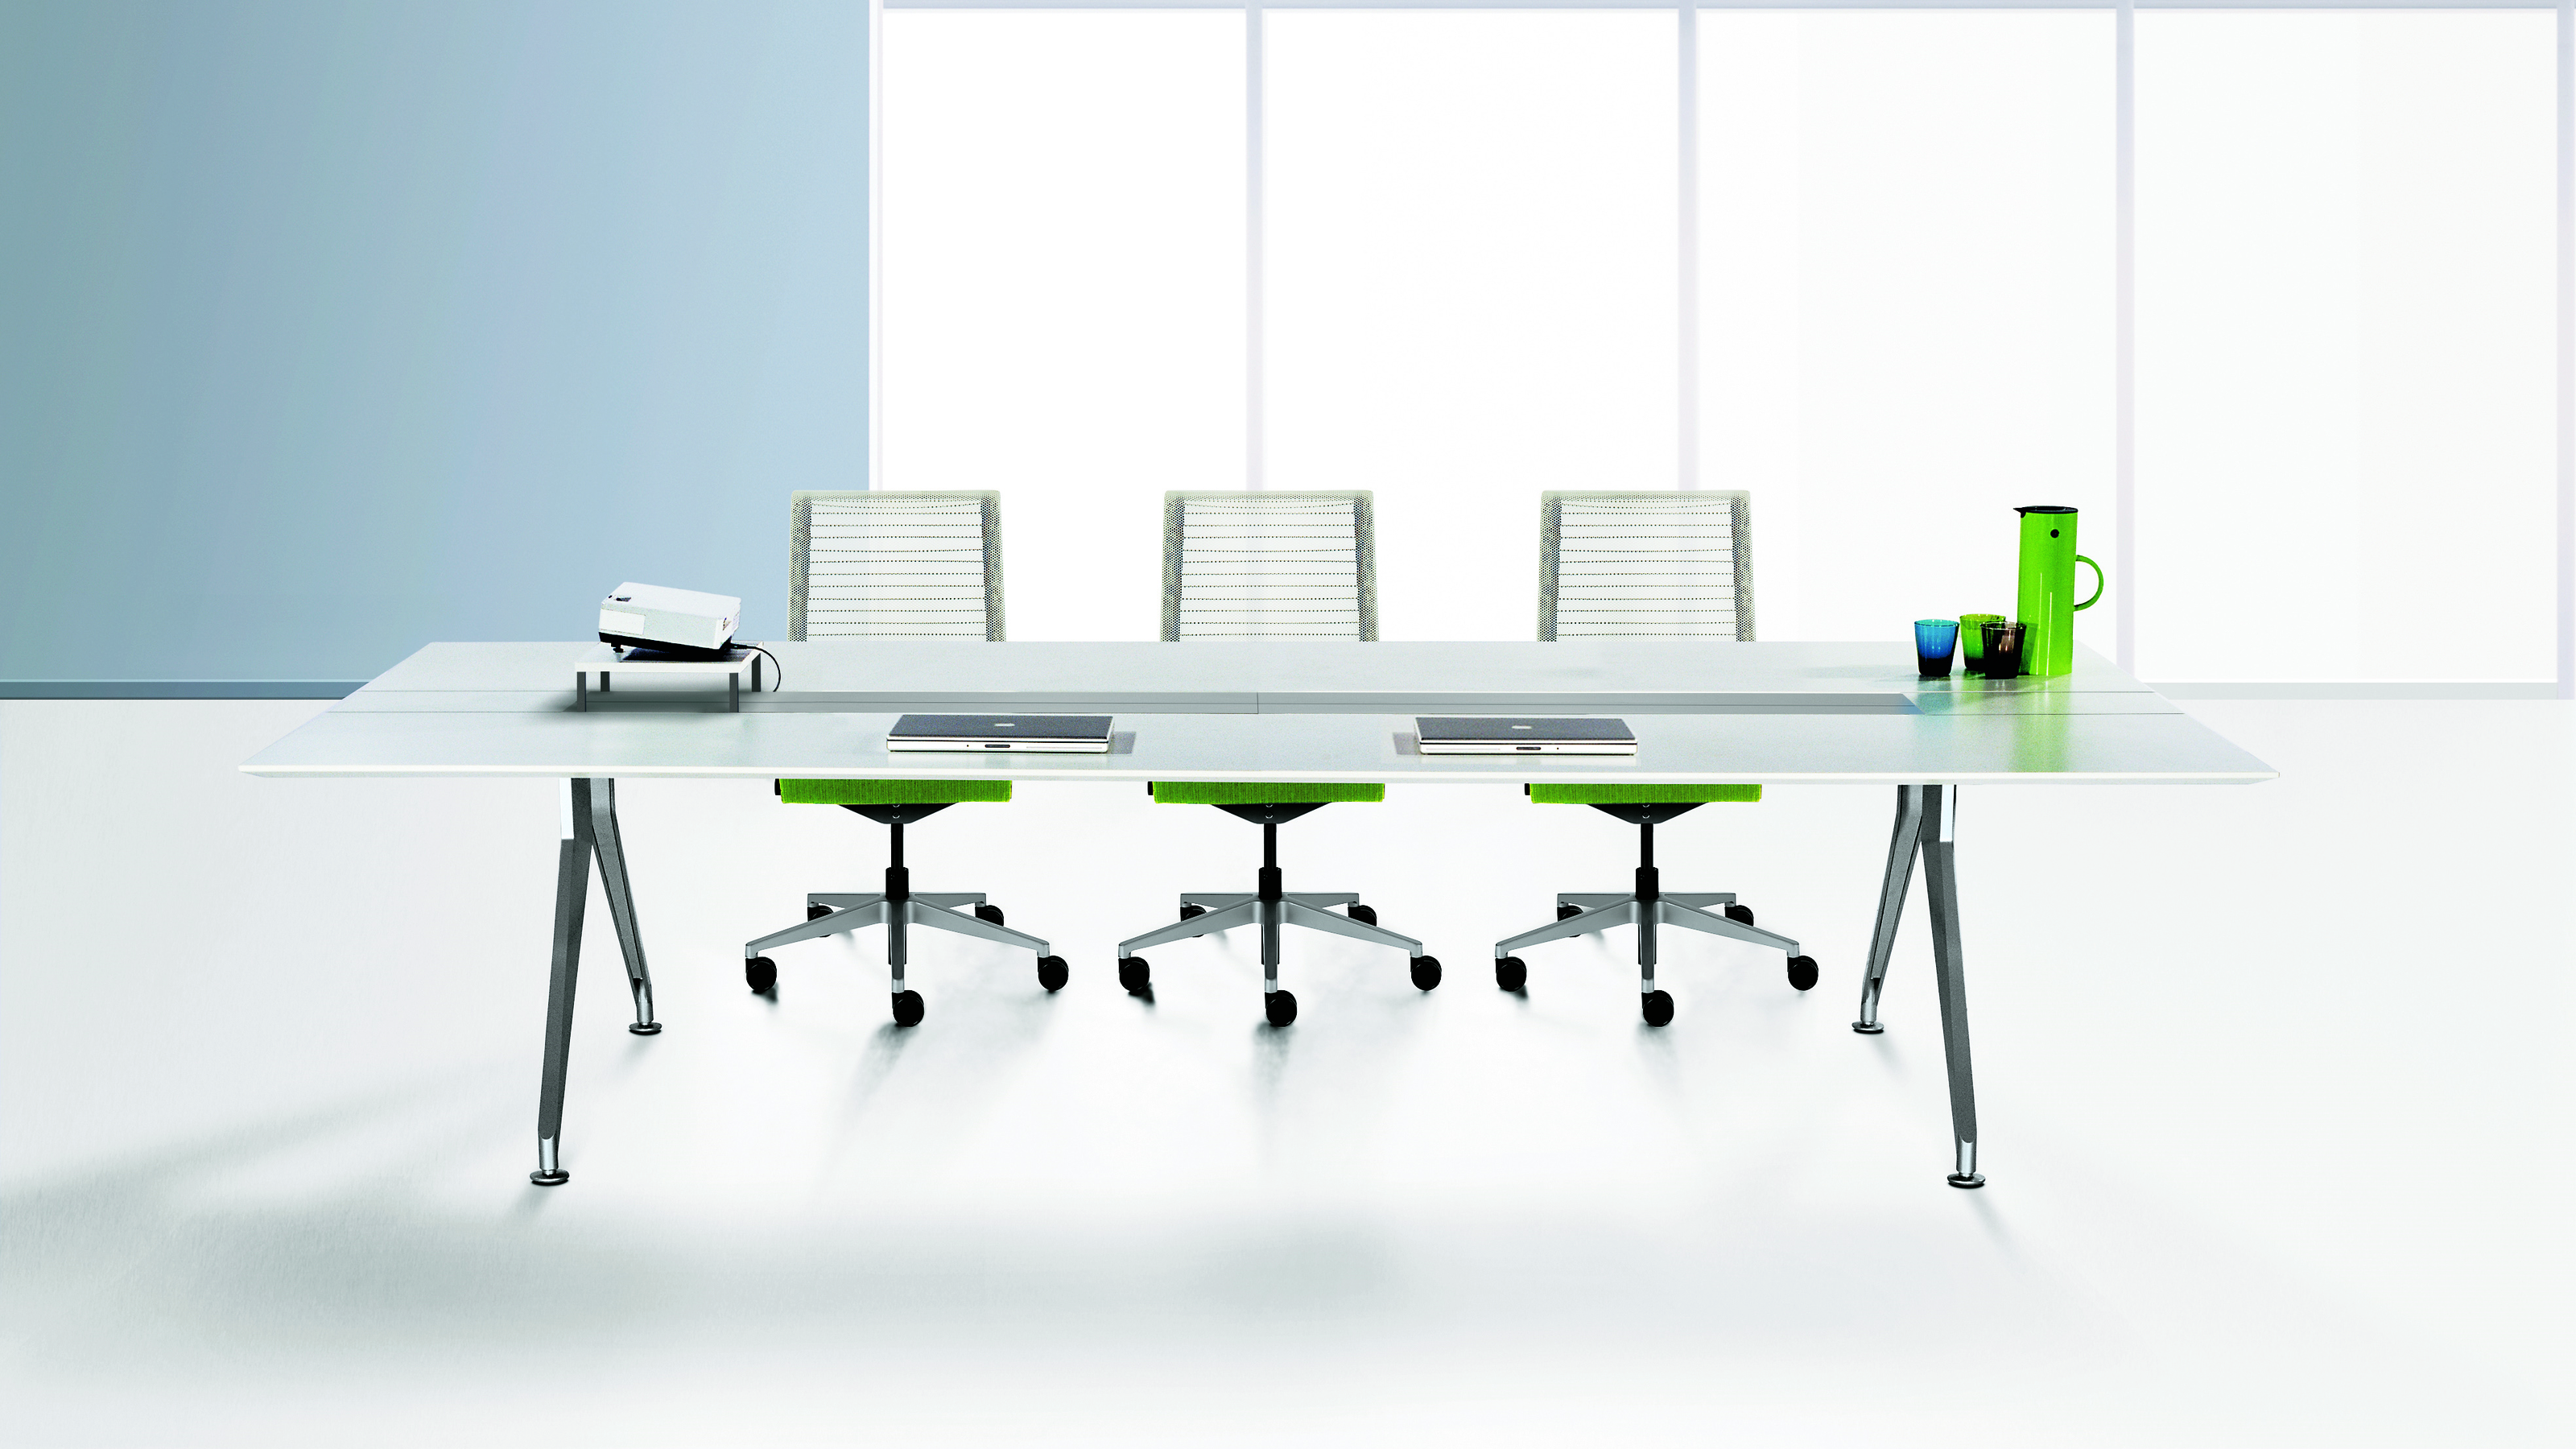 4 8 four point eight meeting table steelcase rh steelcase com Steelcase Furniture Stools Steelcase Furniture Cabinets